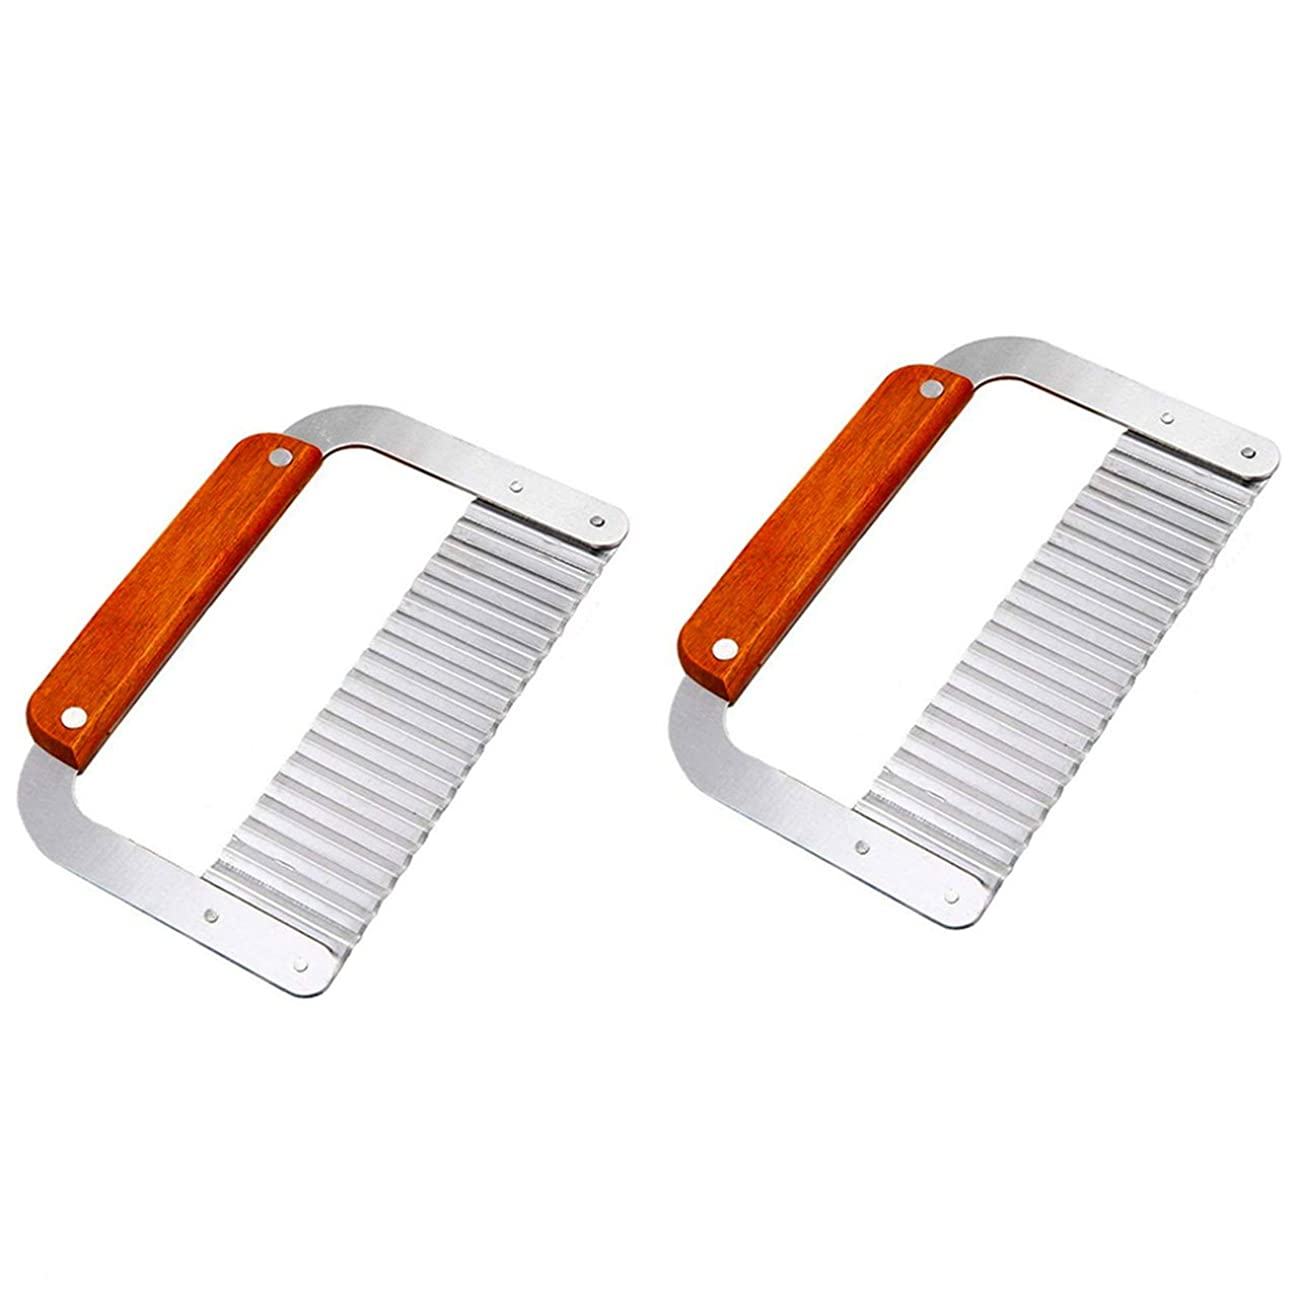 DD-life 2-PACK Stainless Steel Wavy Soap Cutter Soap Making Tools Hardwood Handle Pro. Supply